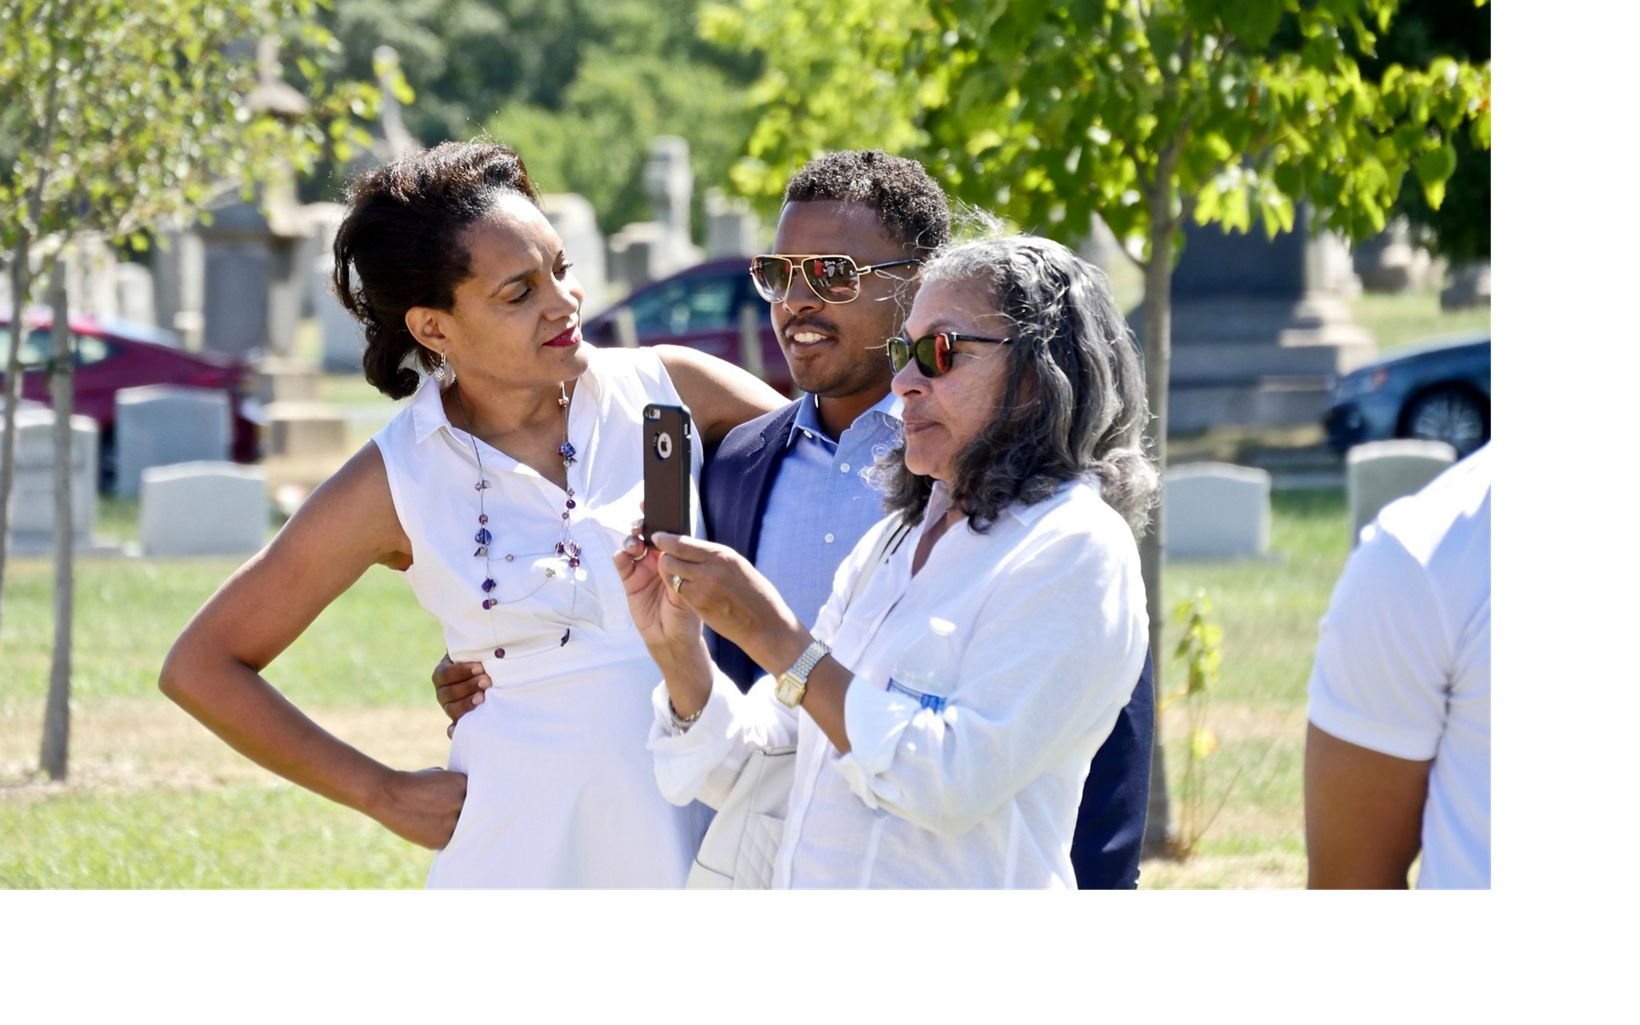 Event organizer Gayle George (l) with extended family members during a celebration of ancestors John and Arabella Weems, freedmen buried at Mt. Olivet Cemetery.